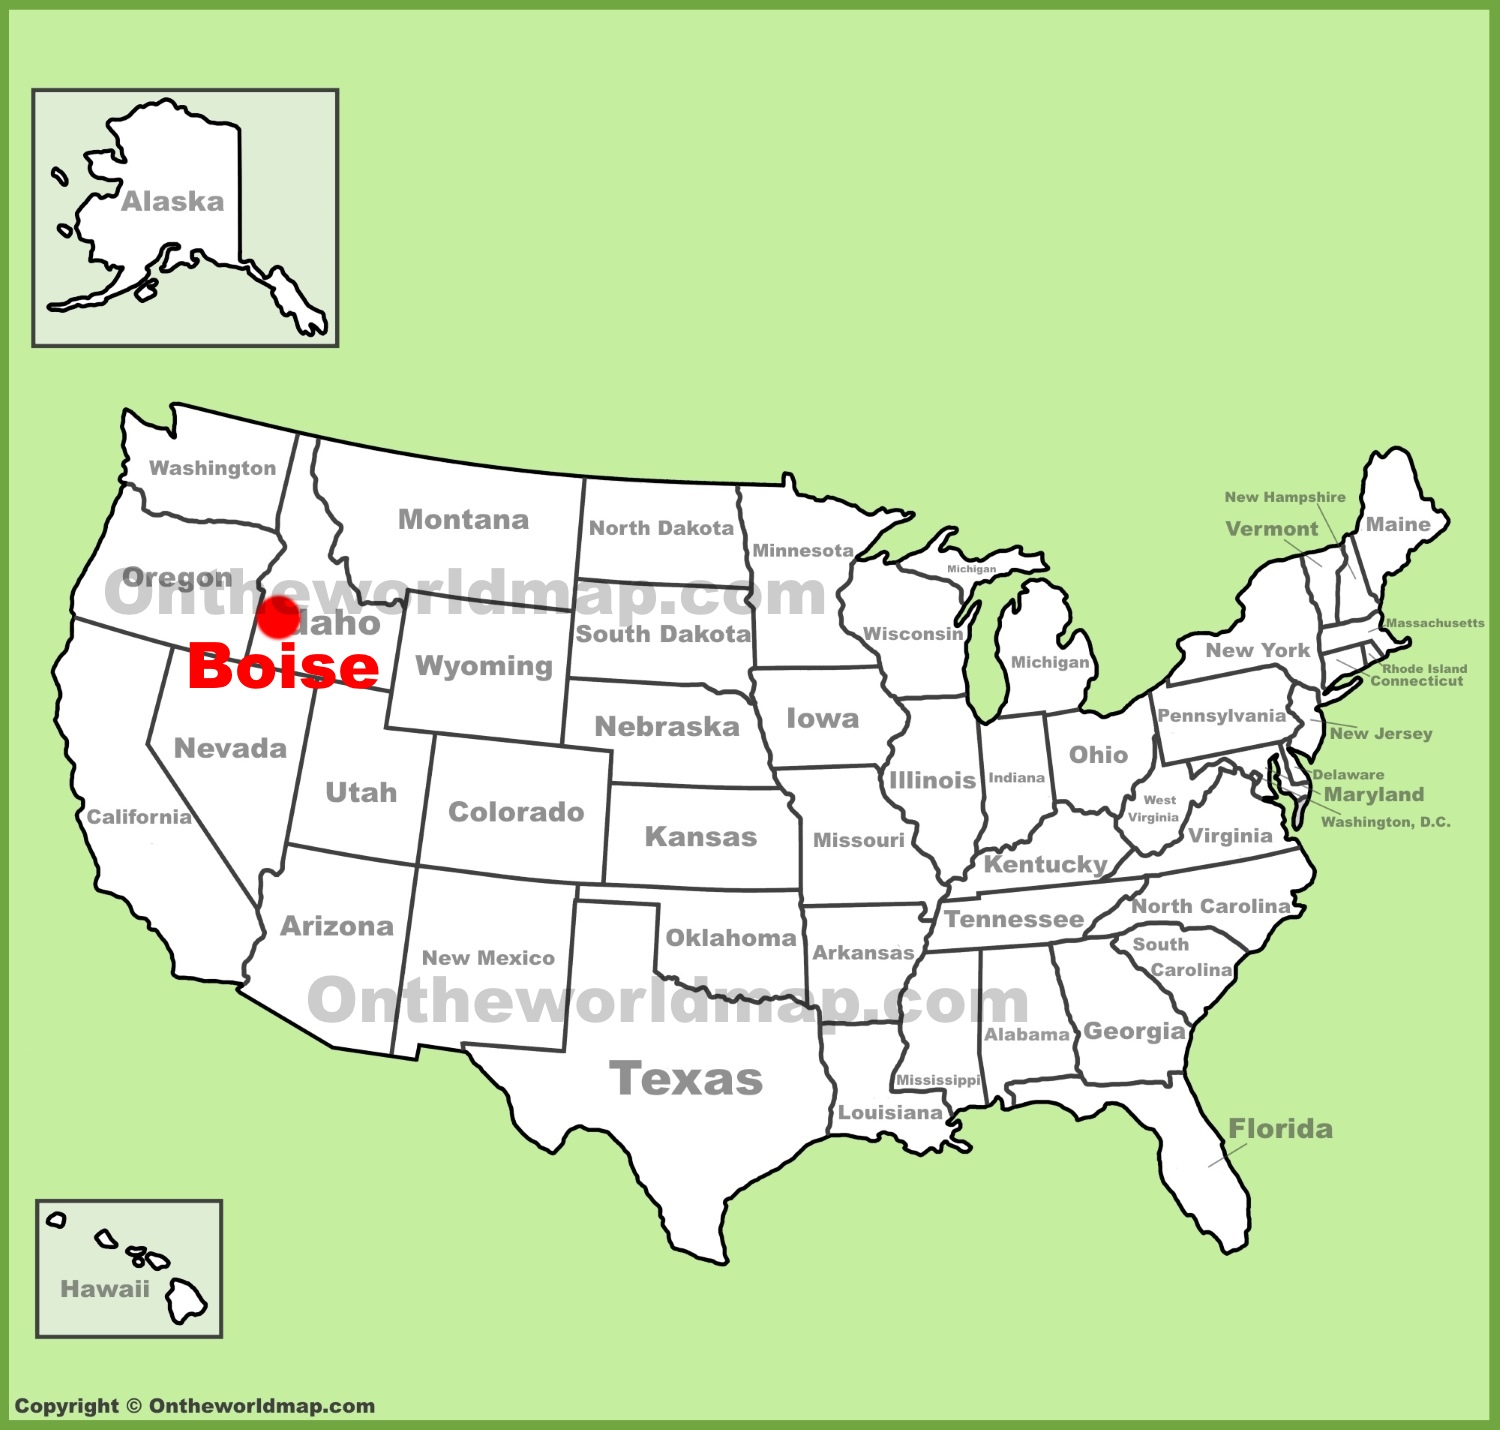 Boise Location On The U.S. Map